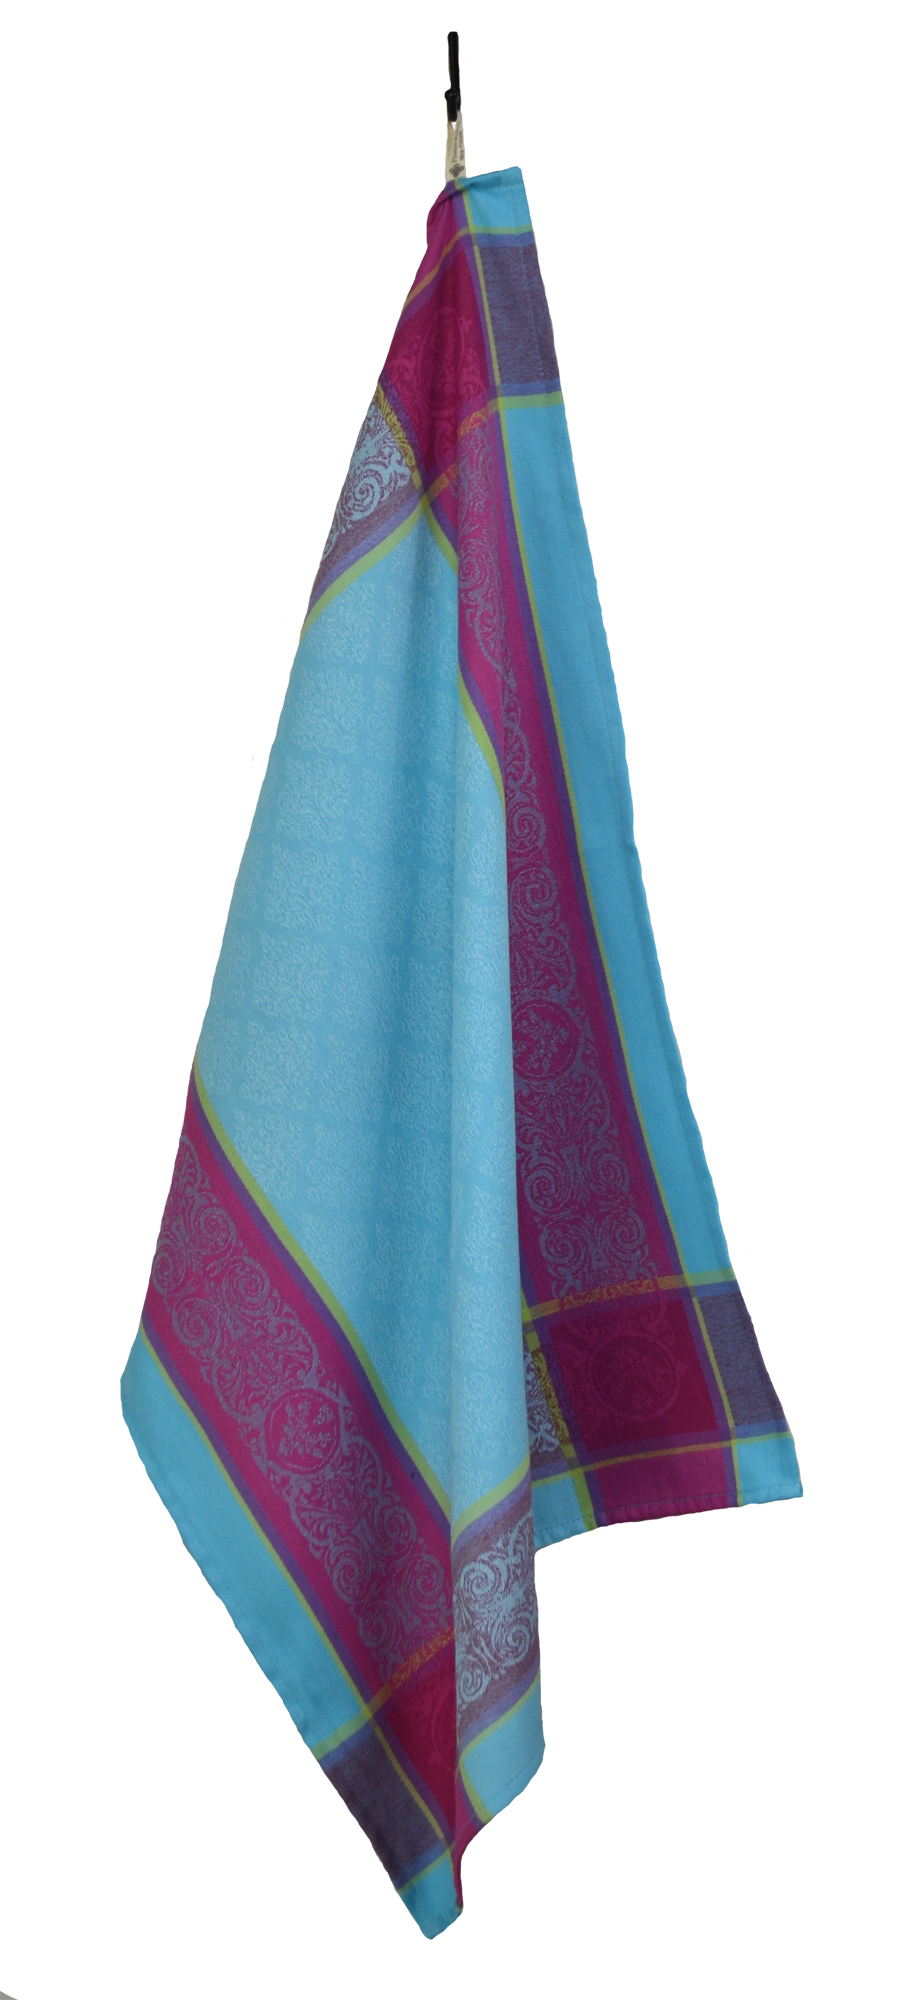 """Floral French Jacquard Tea Towel - Collection """"Prestige"""" Turquoise/Fuchsia, Size: 21 x 27 inches, Price CAN$19.95"""